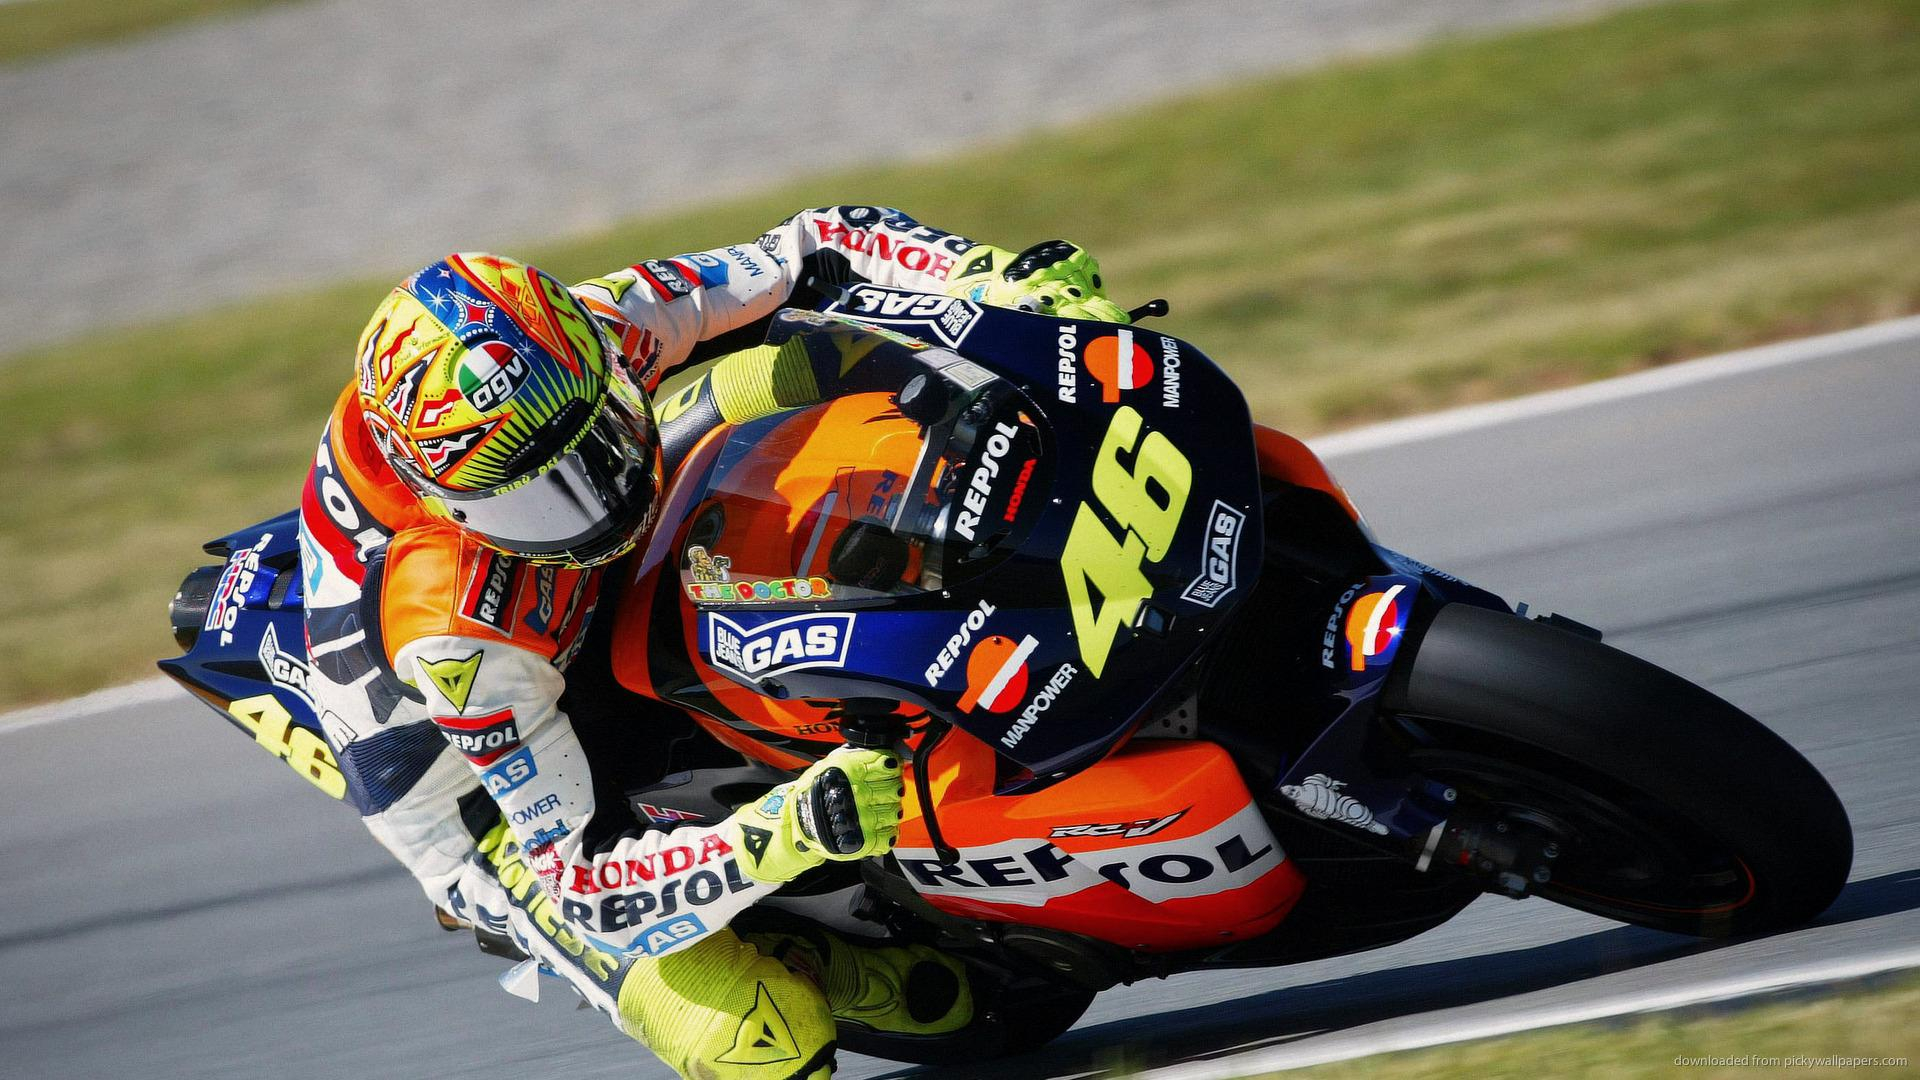 Free Valentino Rossi HD Wallpaper APK Download For Android  GetJar 1920x1080